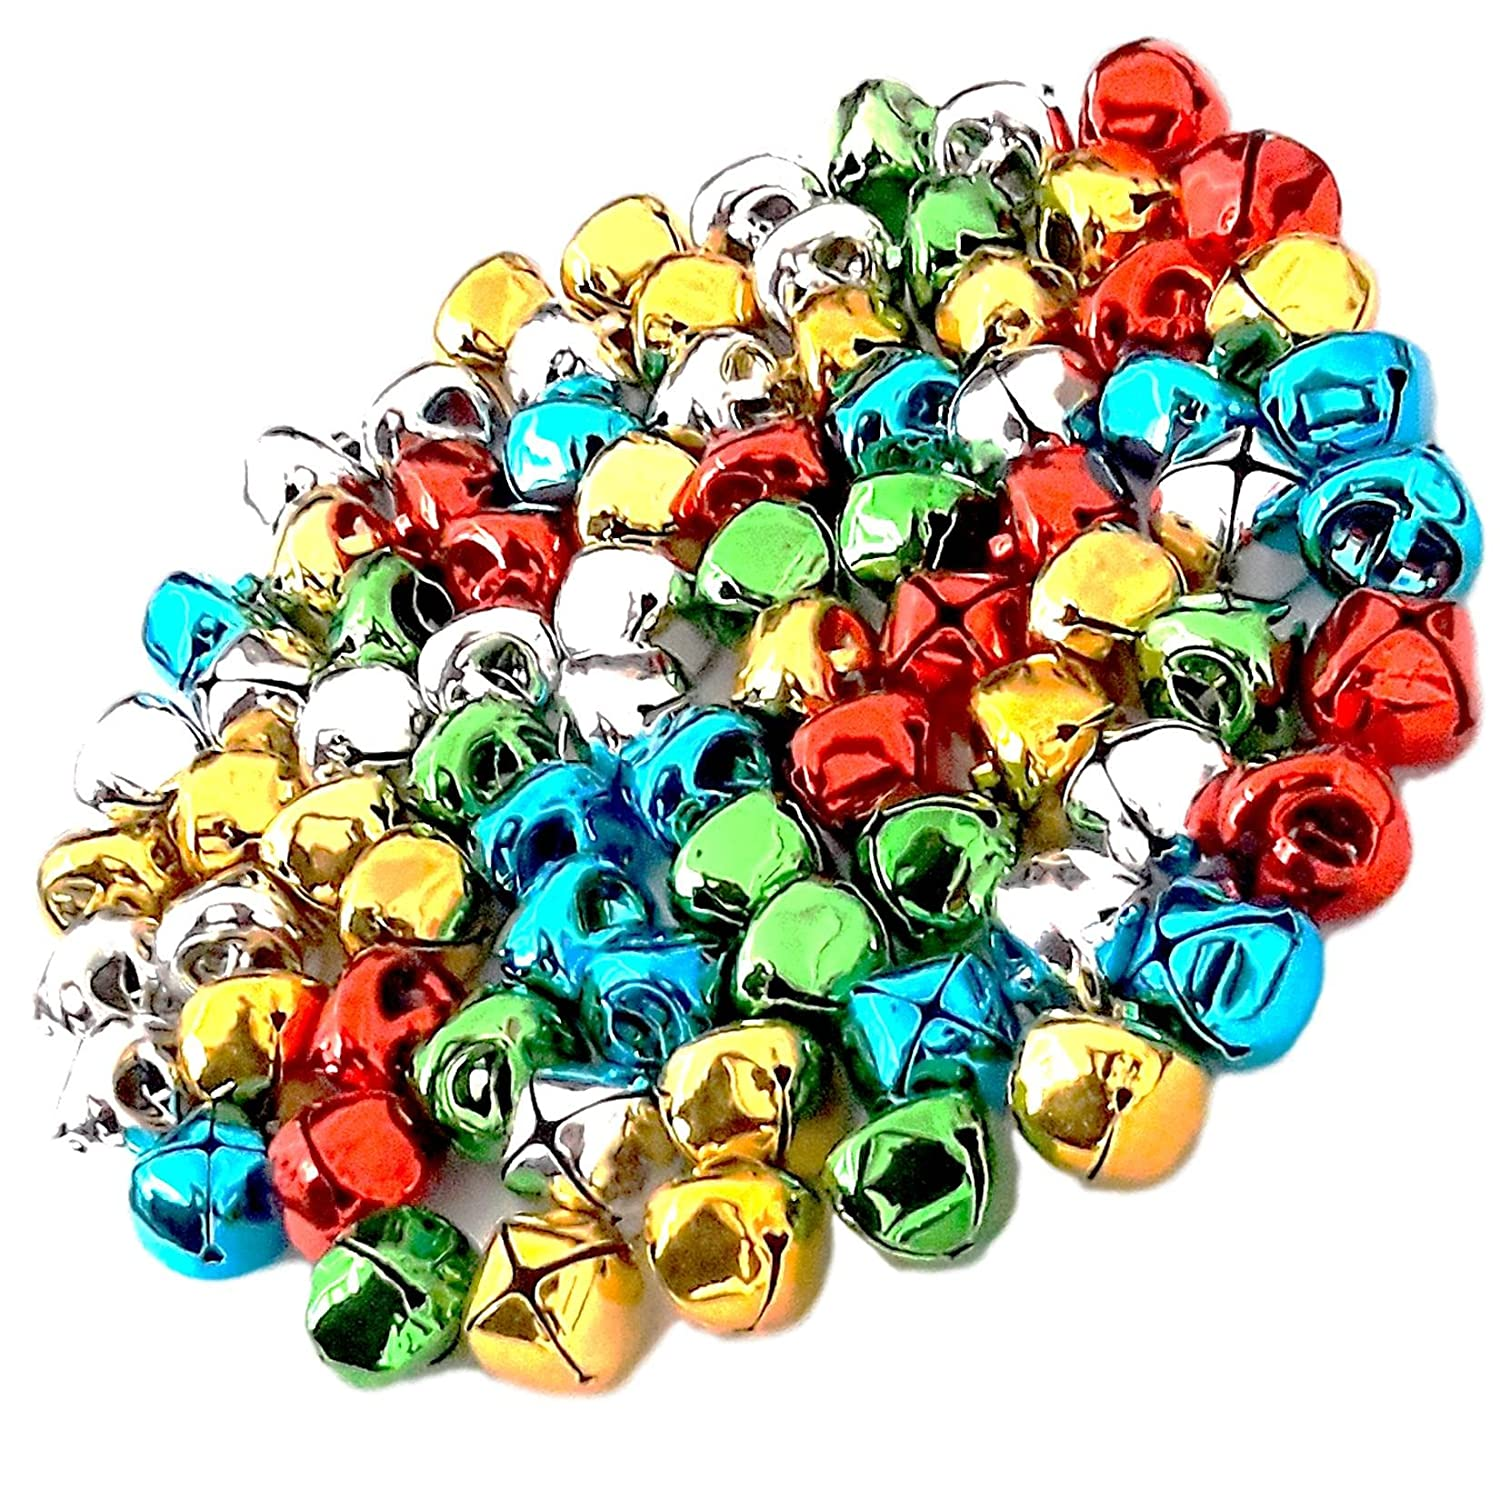 80 Jingle Bells 15mm Coloured Gold Silver Red Green Blue for Craft Kids Crafts Christmas Sleigh Festive Decorations By Amazing Arts and Crafts